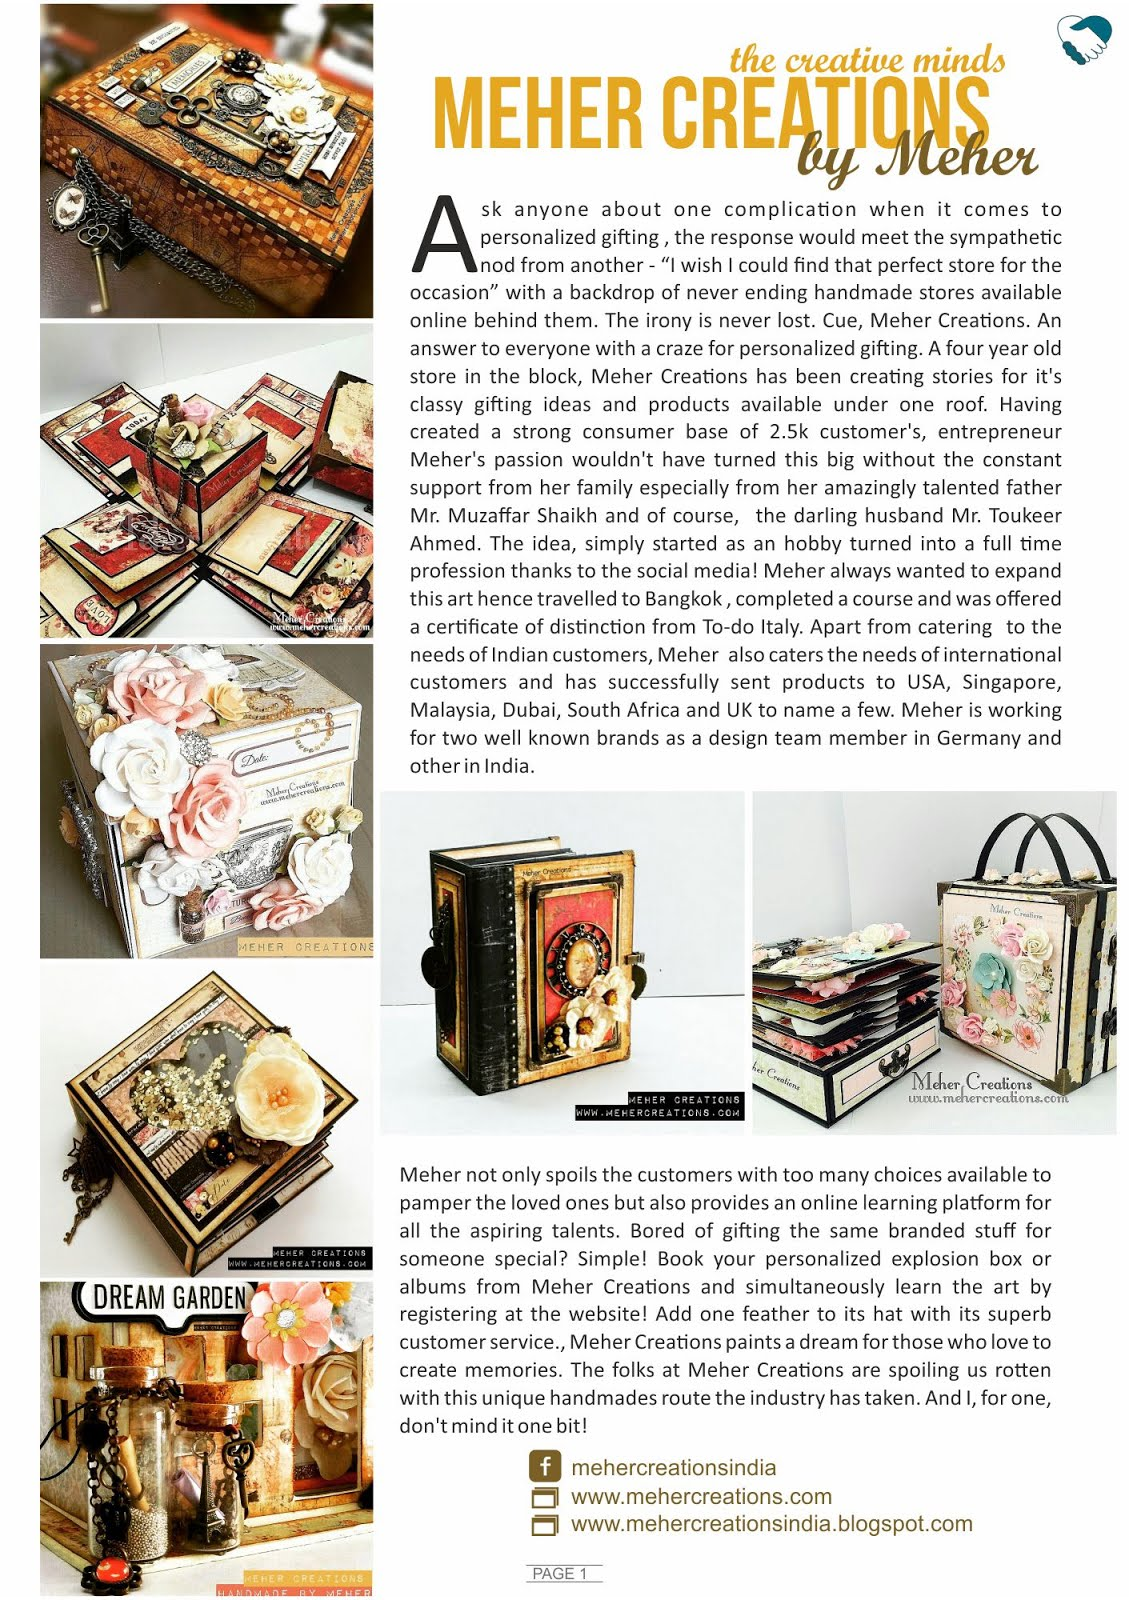 Article about Meher Creations